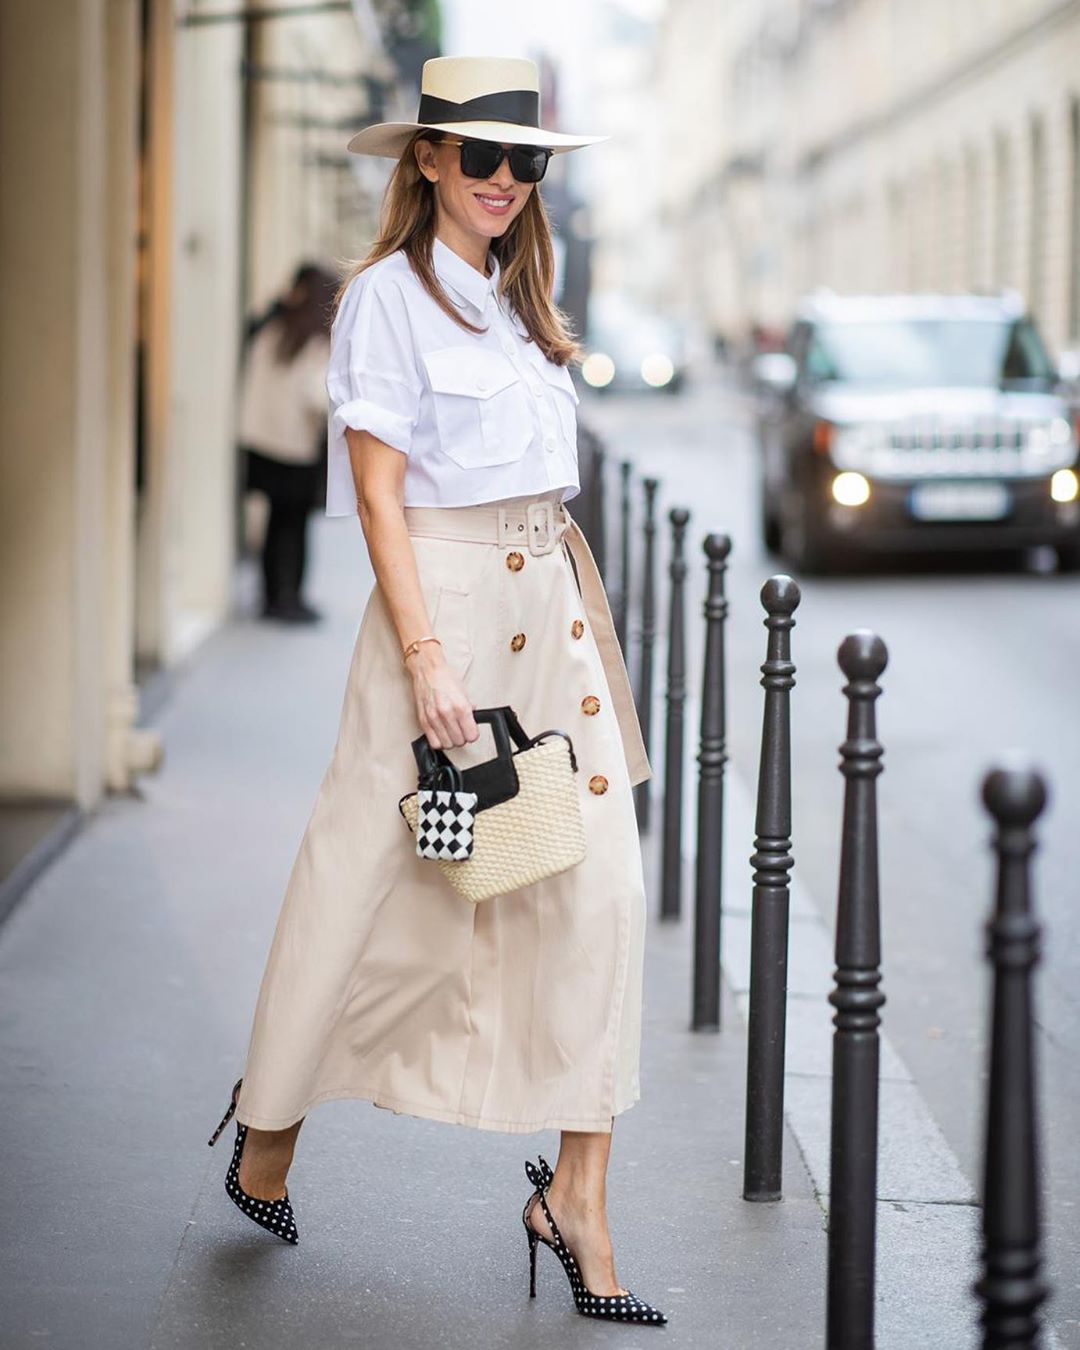 A Chic Midi Skirt Outfit You'll Want to Wear On Repeat